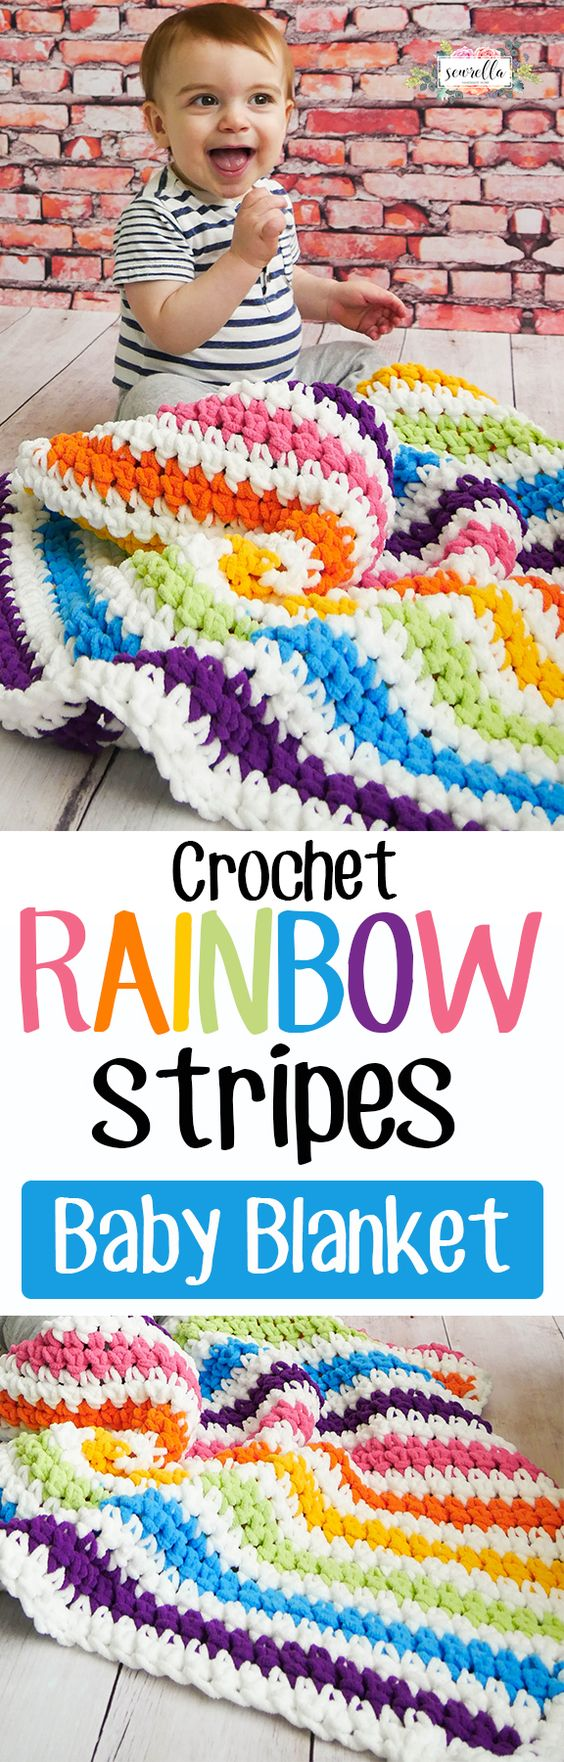 Crochet Rainbow Stripes Baby Blanket Free Pattern.